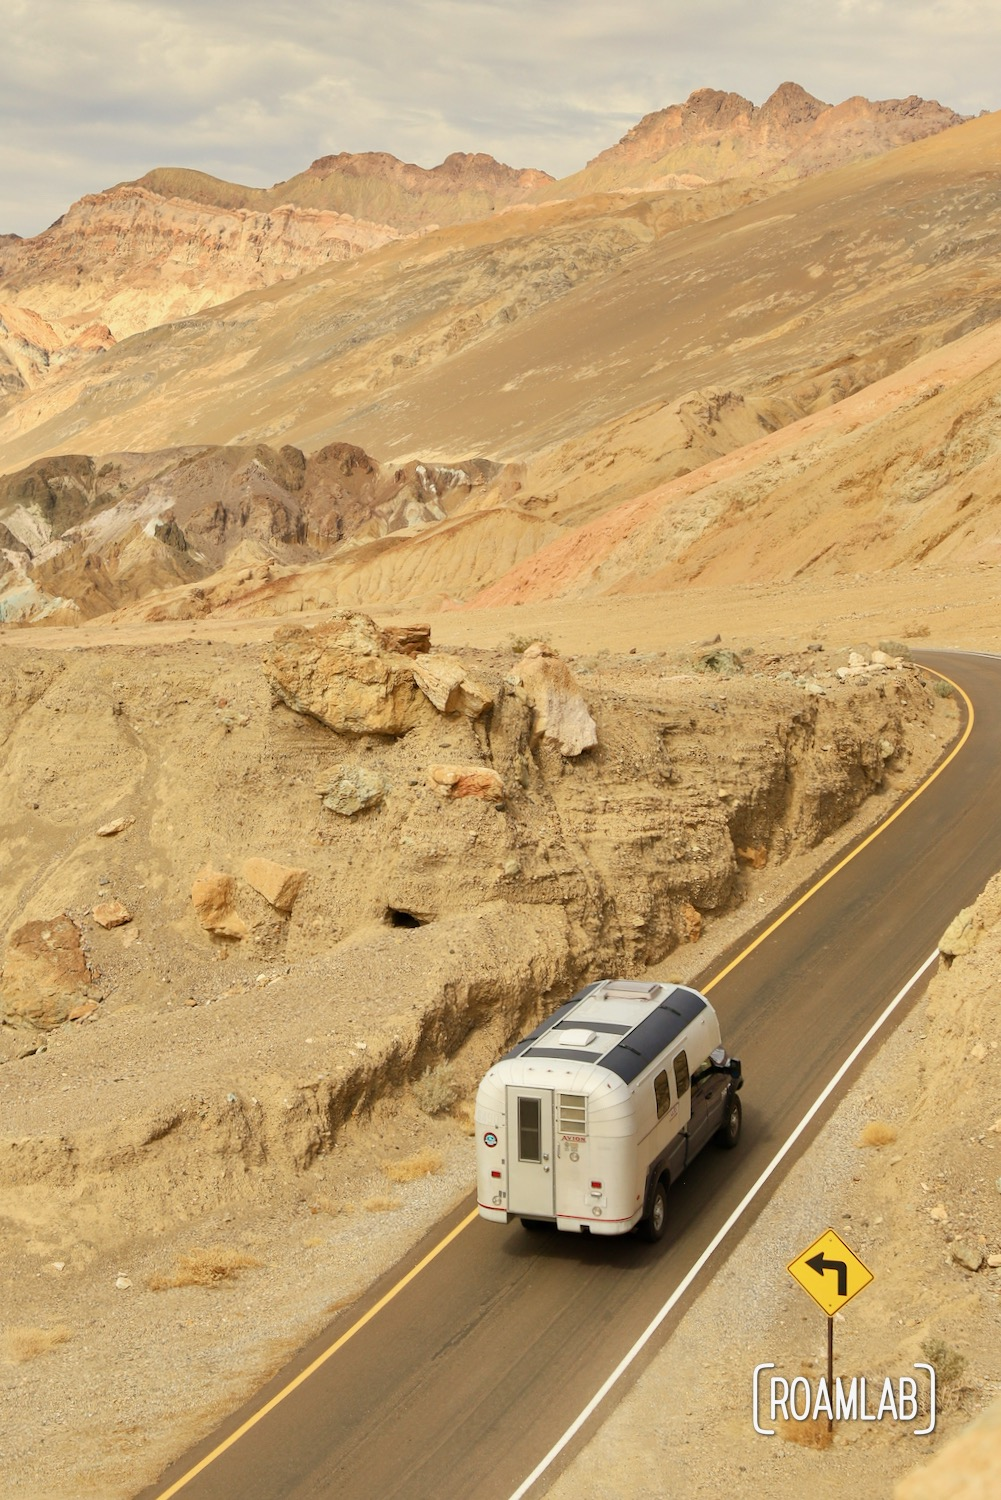 1970 Avion C11 truck camper driving through Artist's Road in Death Valley National Park.